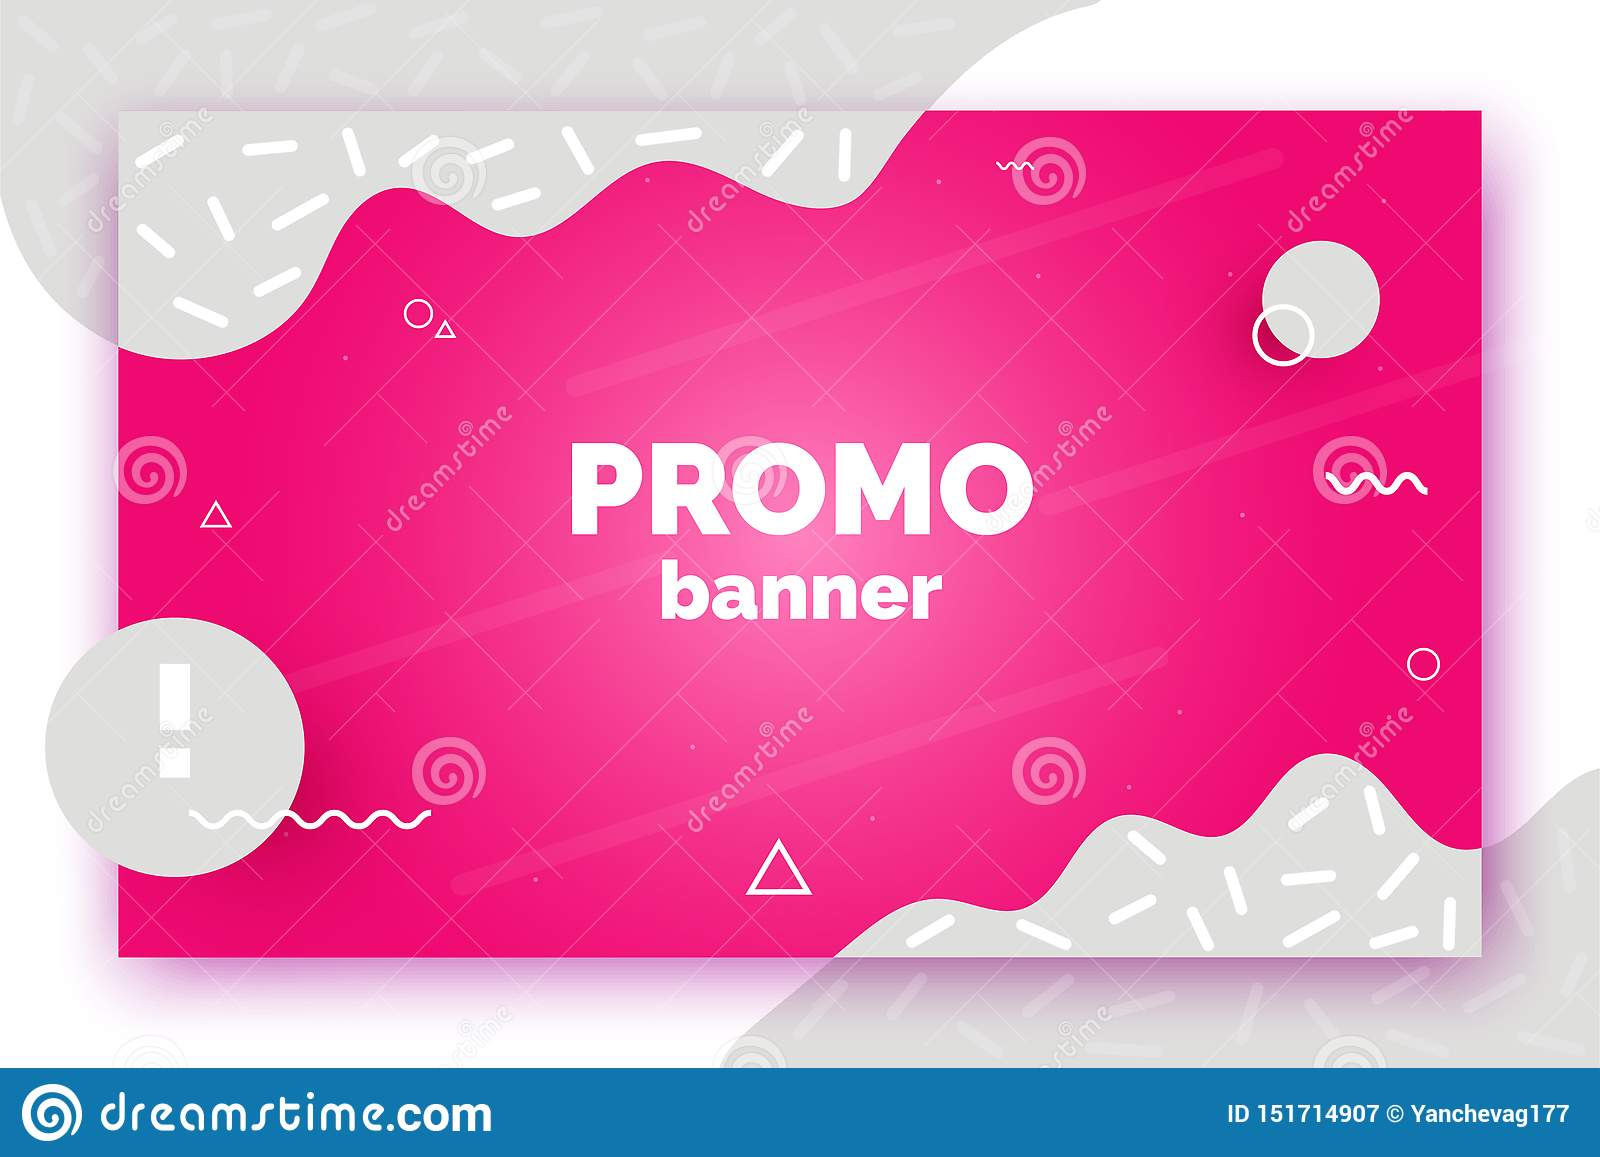 Banner for sale, offer, promotion, advertisement. Trendy vector background, flyer, poster, page, cover with abstract